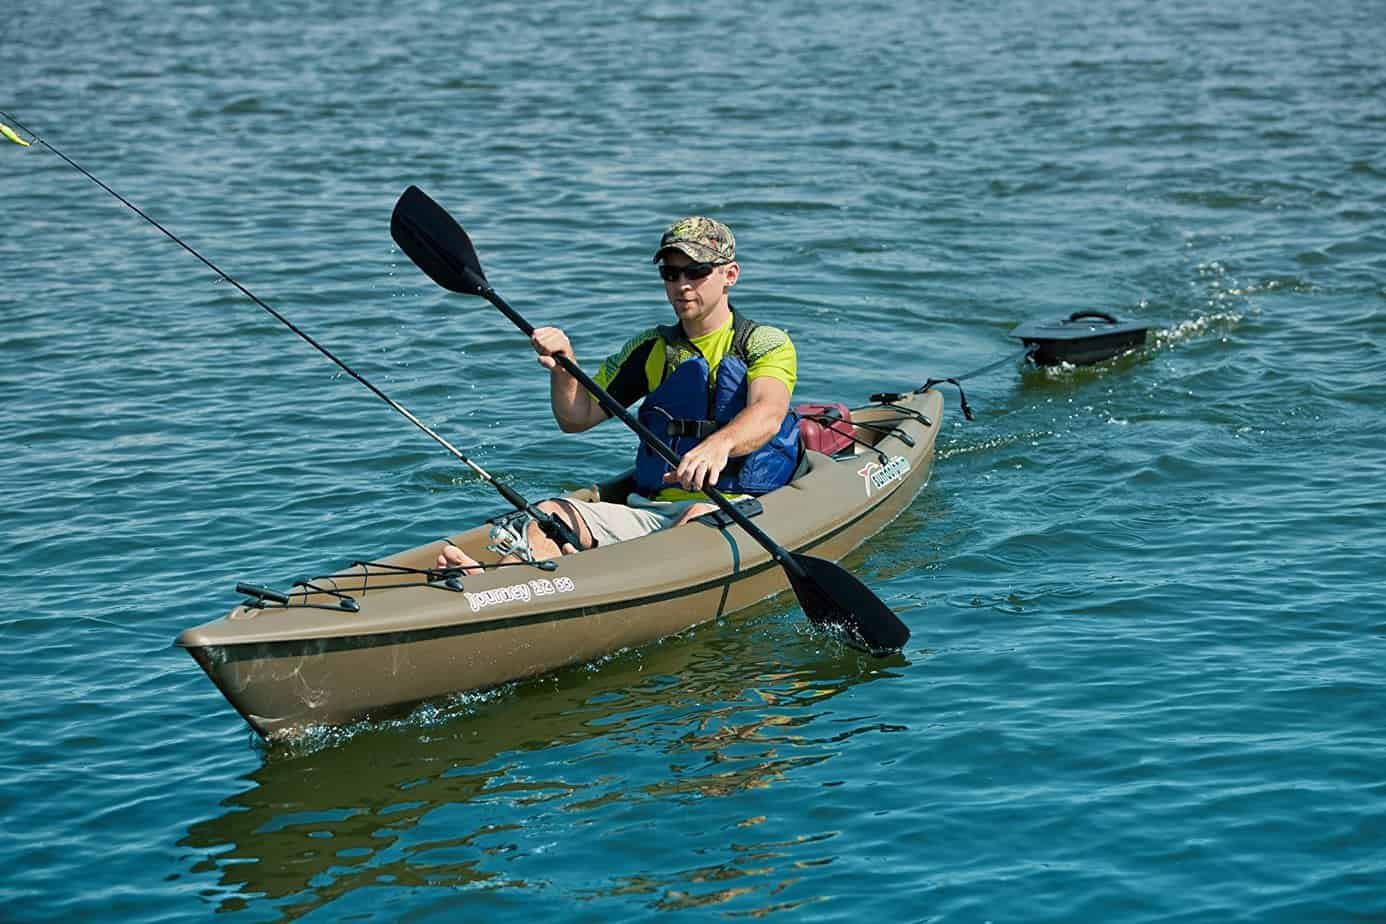 magellan fishing chair gilbert ikea best n cool page 3 of 7 your home for stuff kayak big guys heavy person